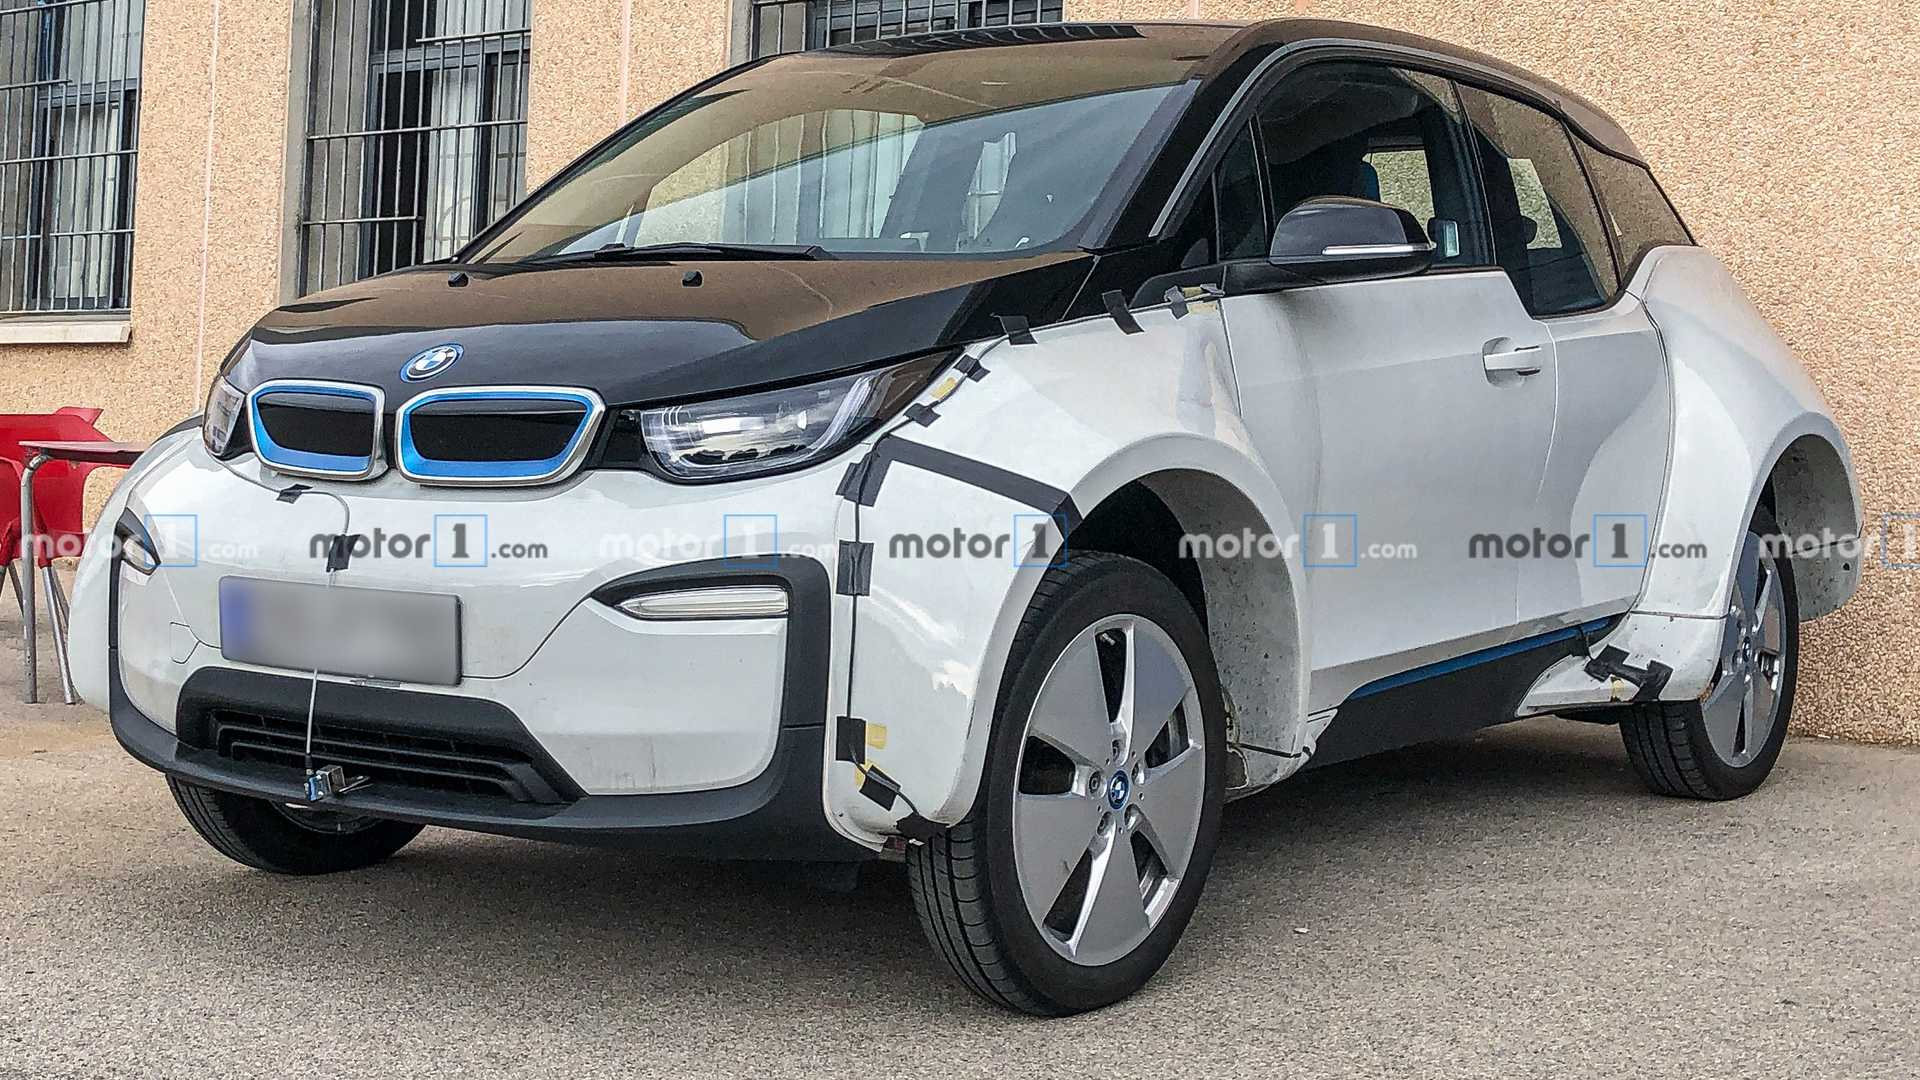 Weird BMW i3 test mule spied with the widest fenders ever